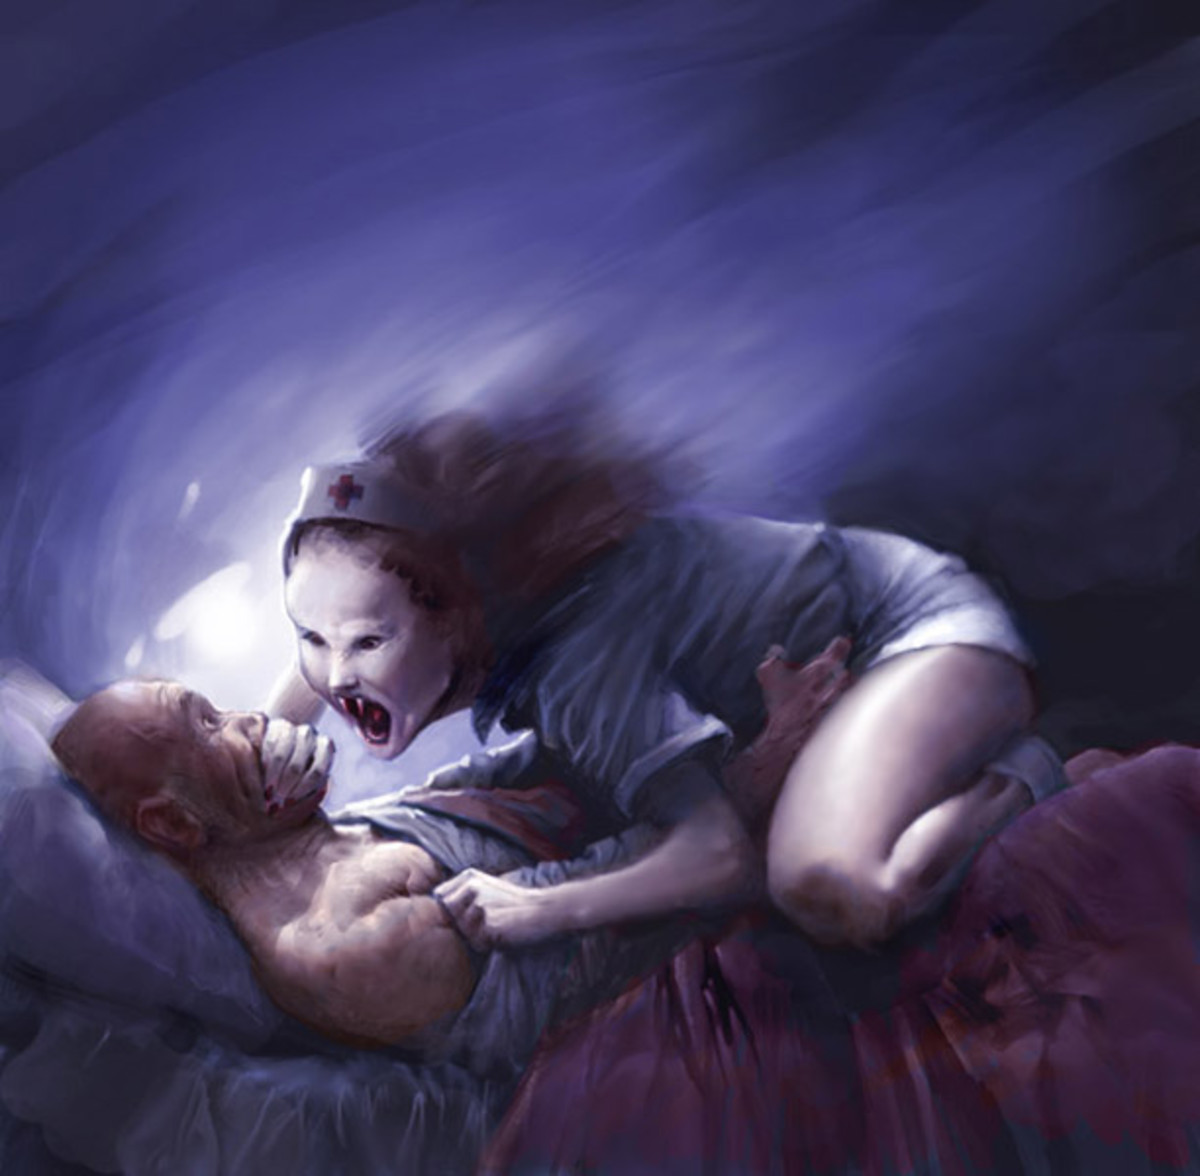 sleep-paralysis-symptoms-causes-and-prevention